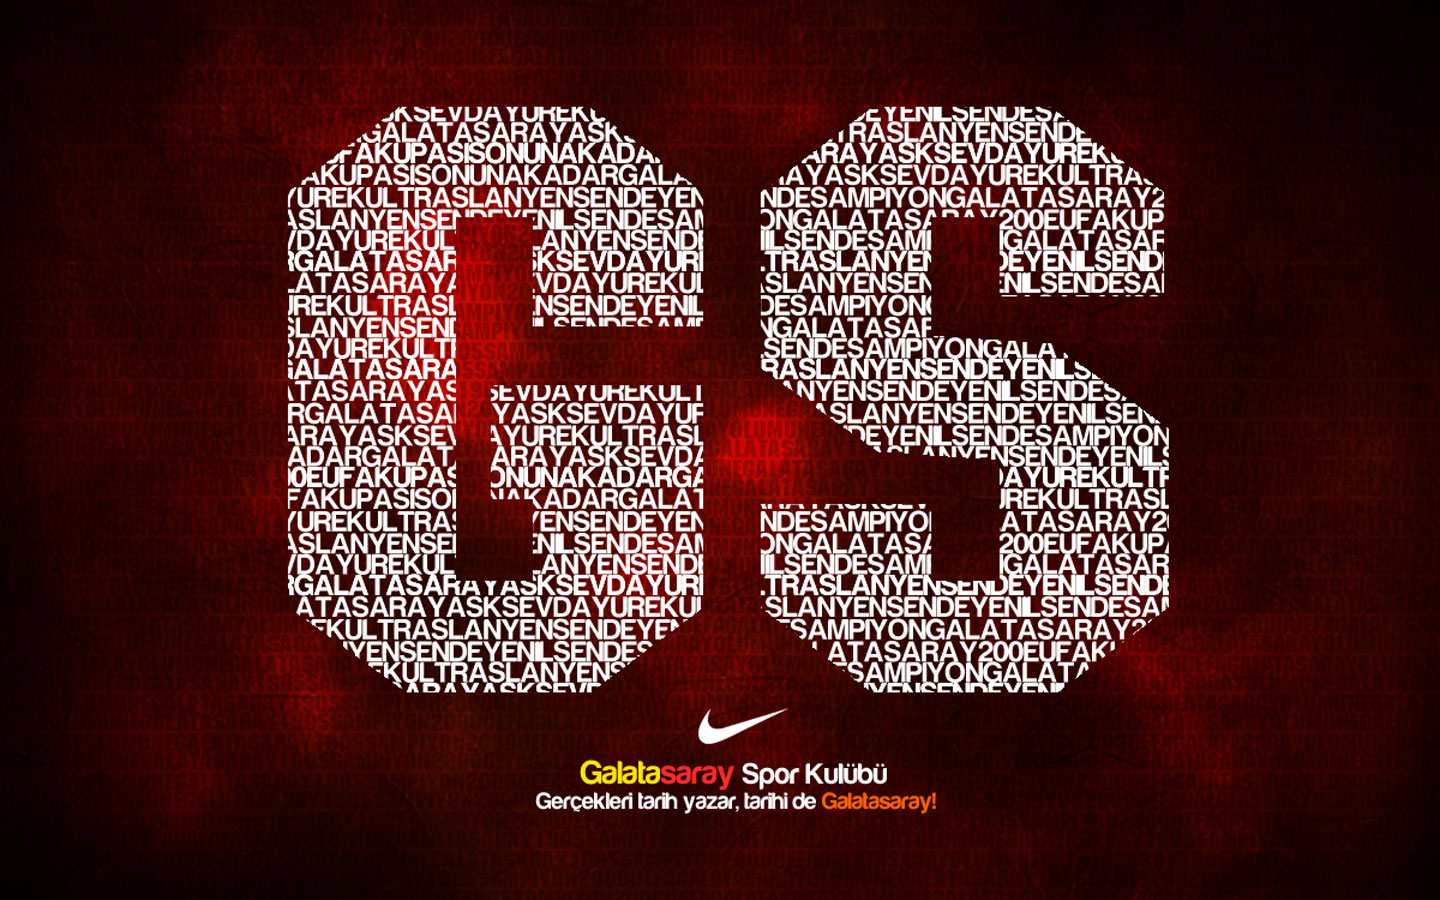 Widescreen Wallpapers Of Galatasaray Top Pics